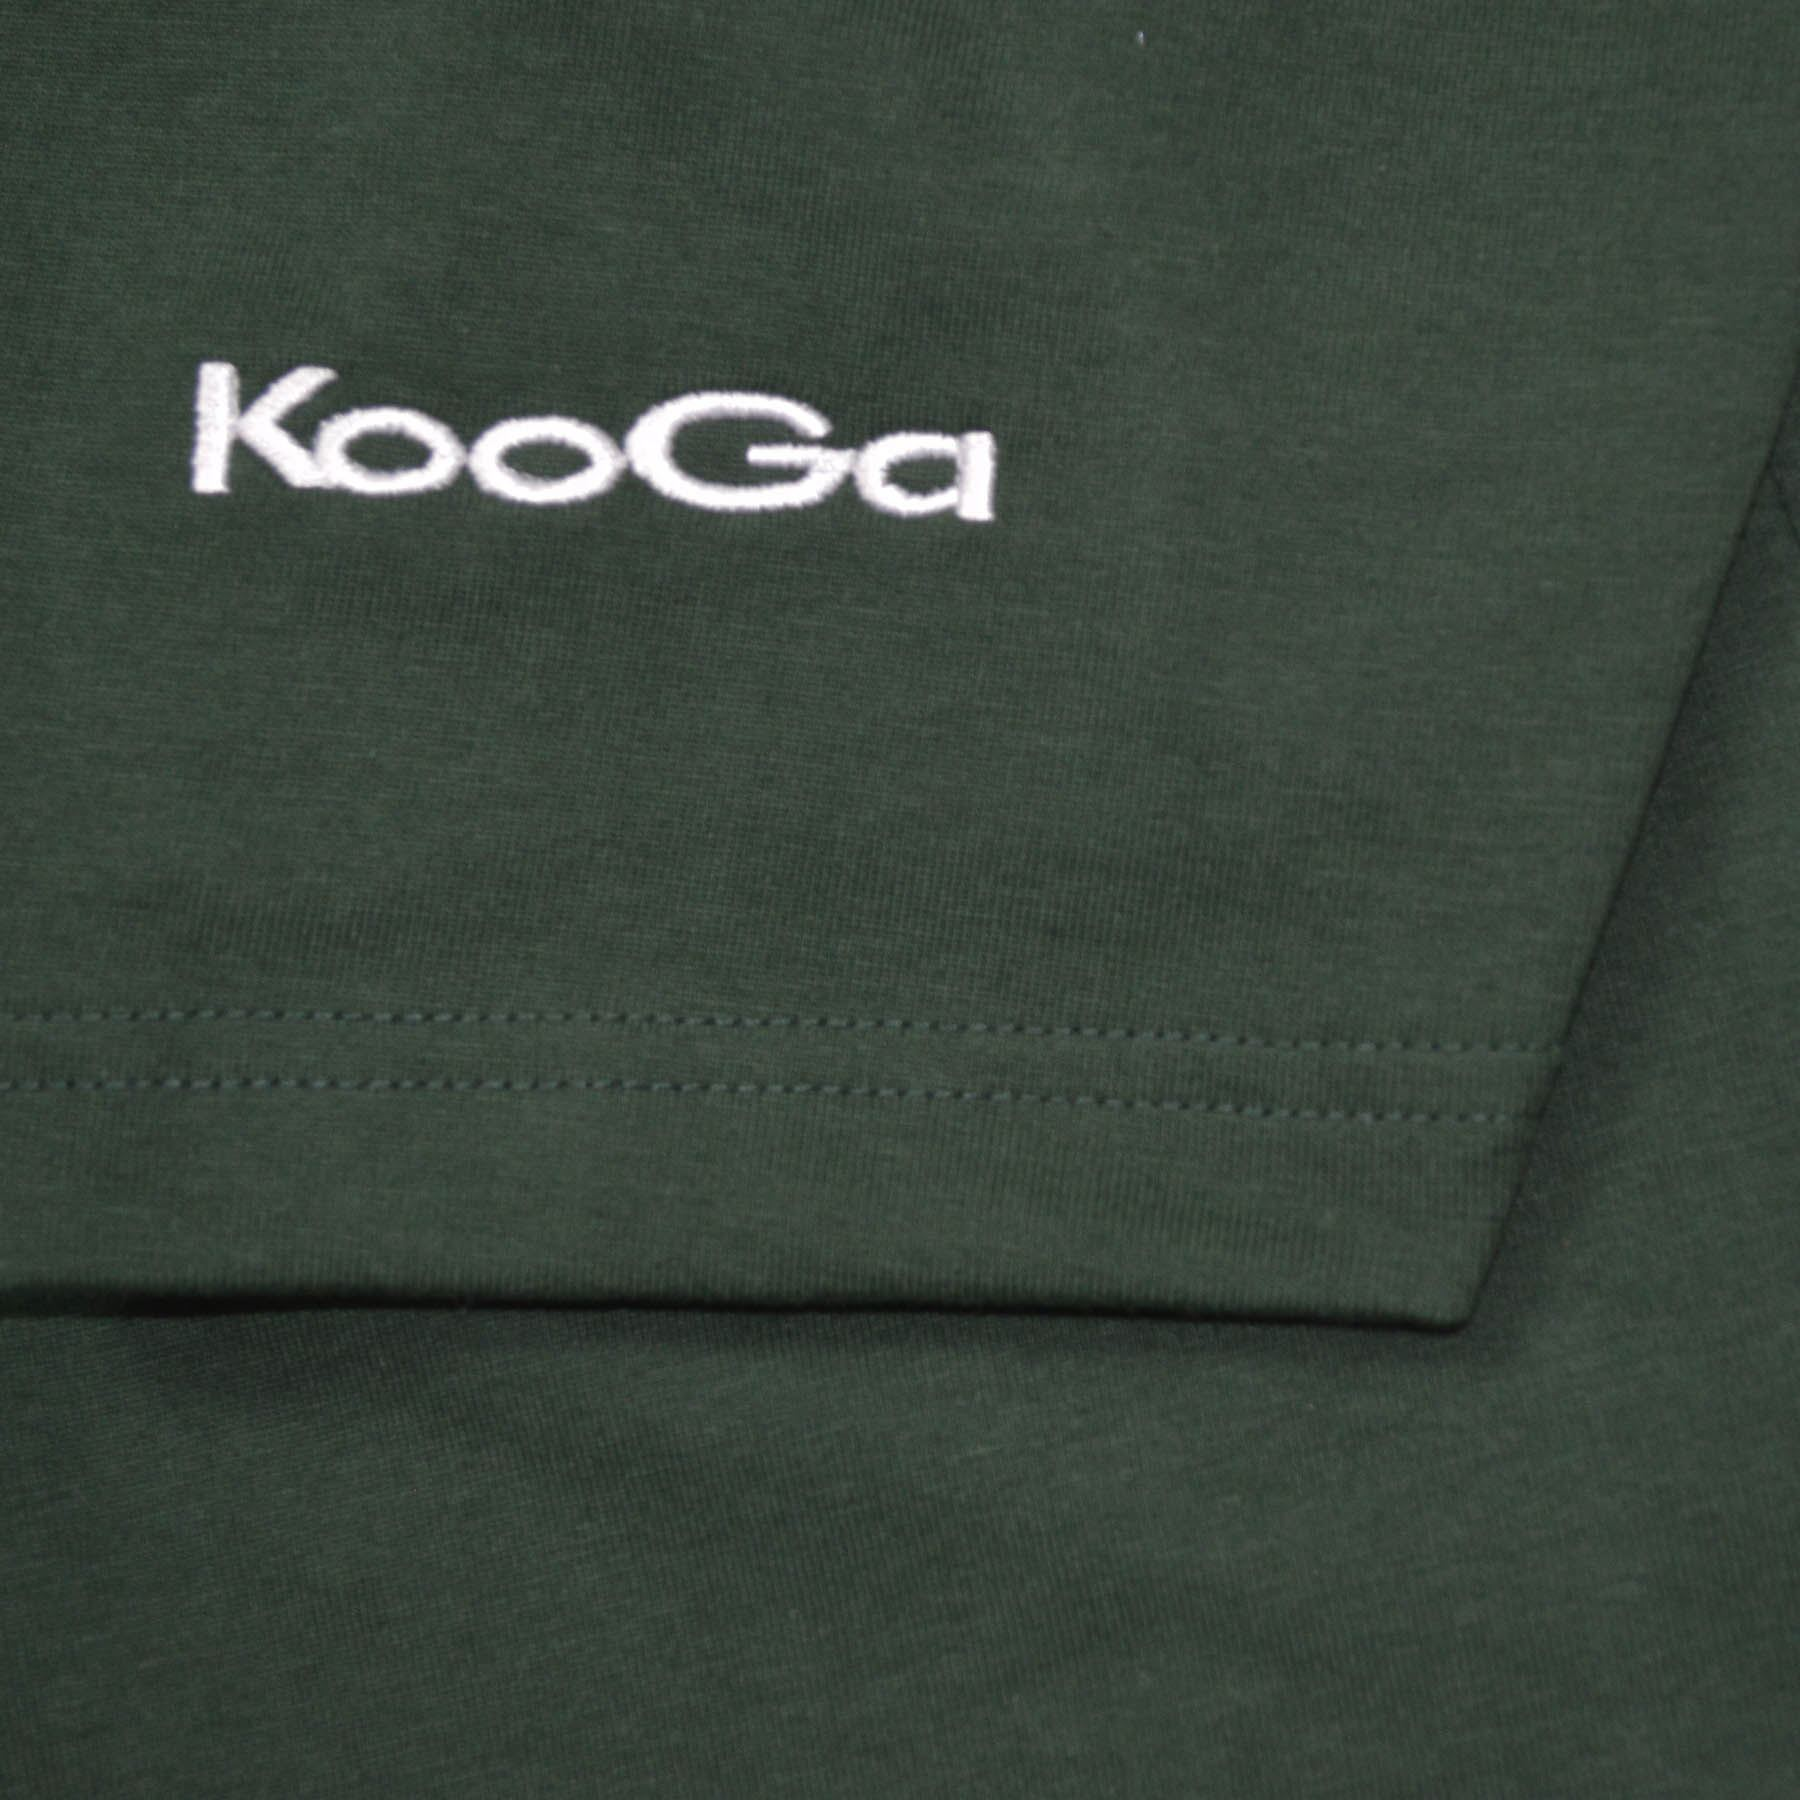 NEW-Kooga-Mens-Polo-Rugby-Shirt-Top-in-Red-or-Green-Size-S-amp-XL thumbnail 5